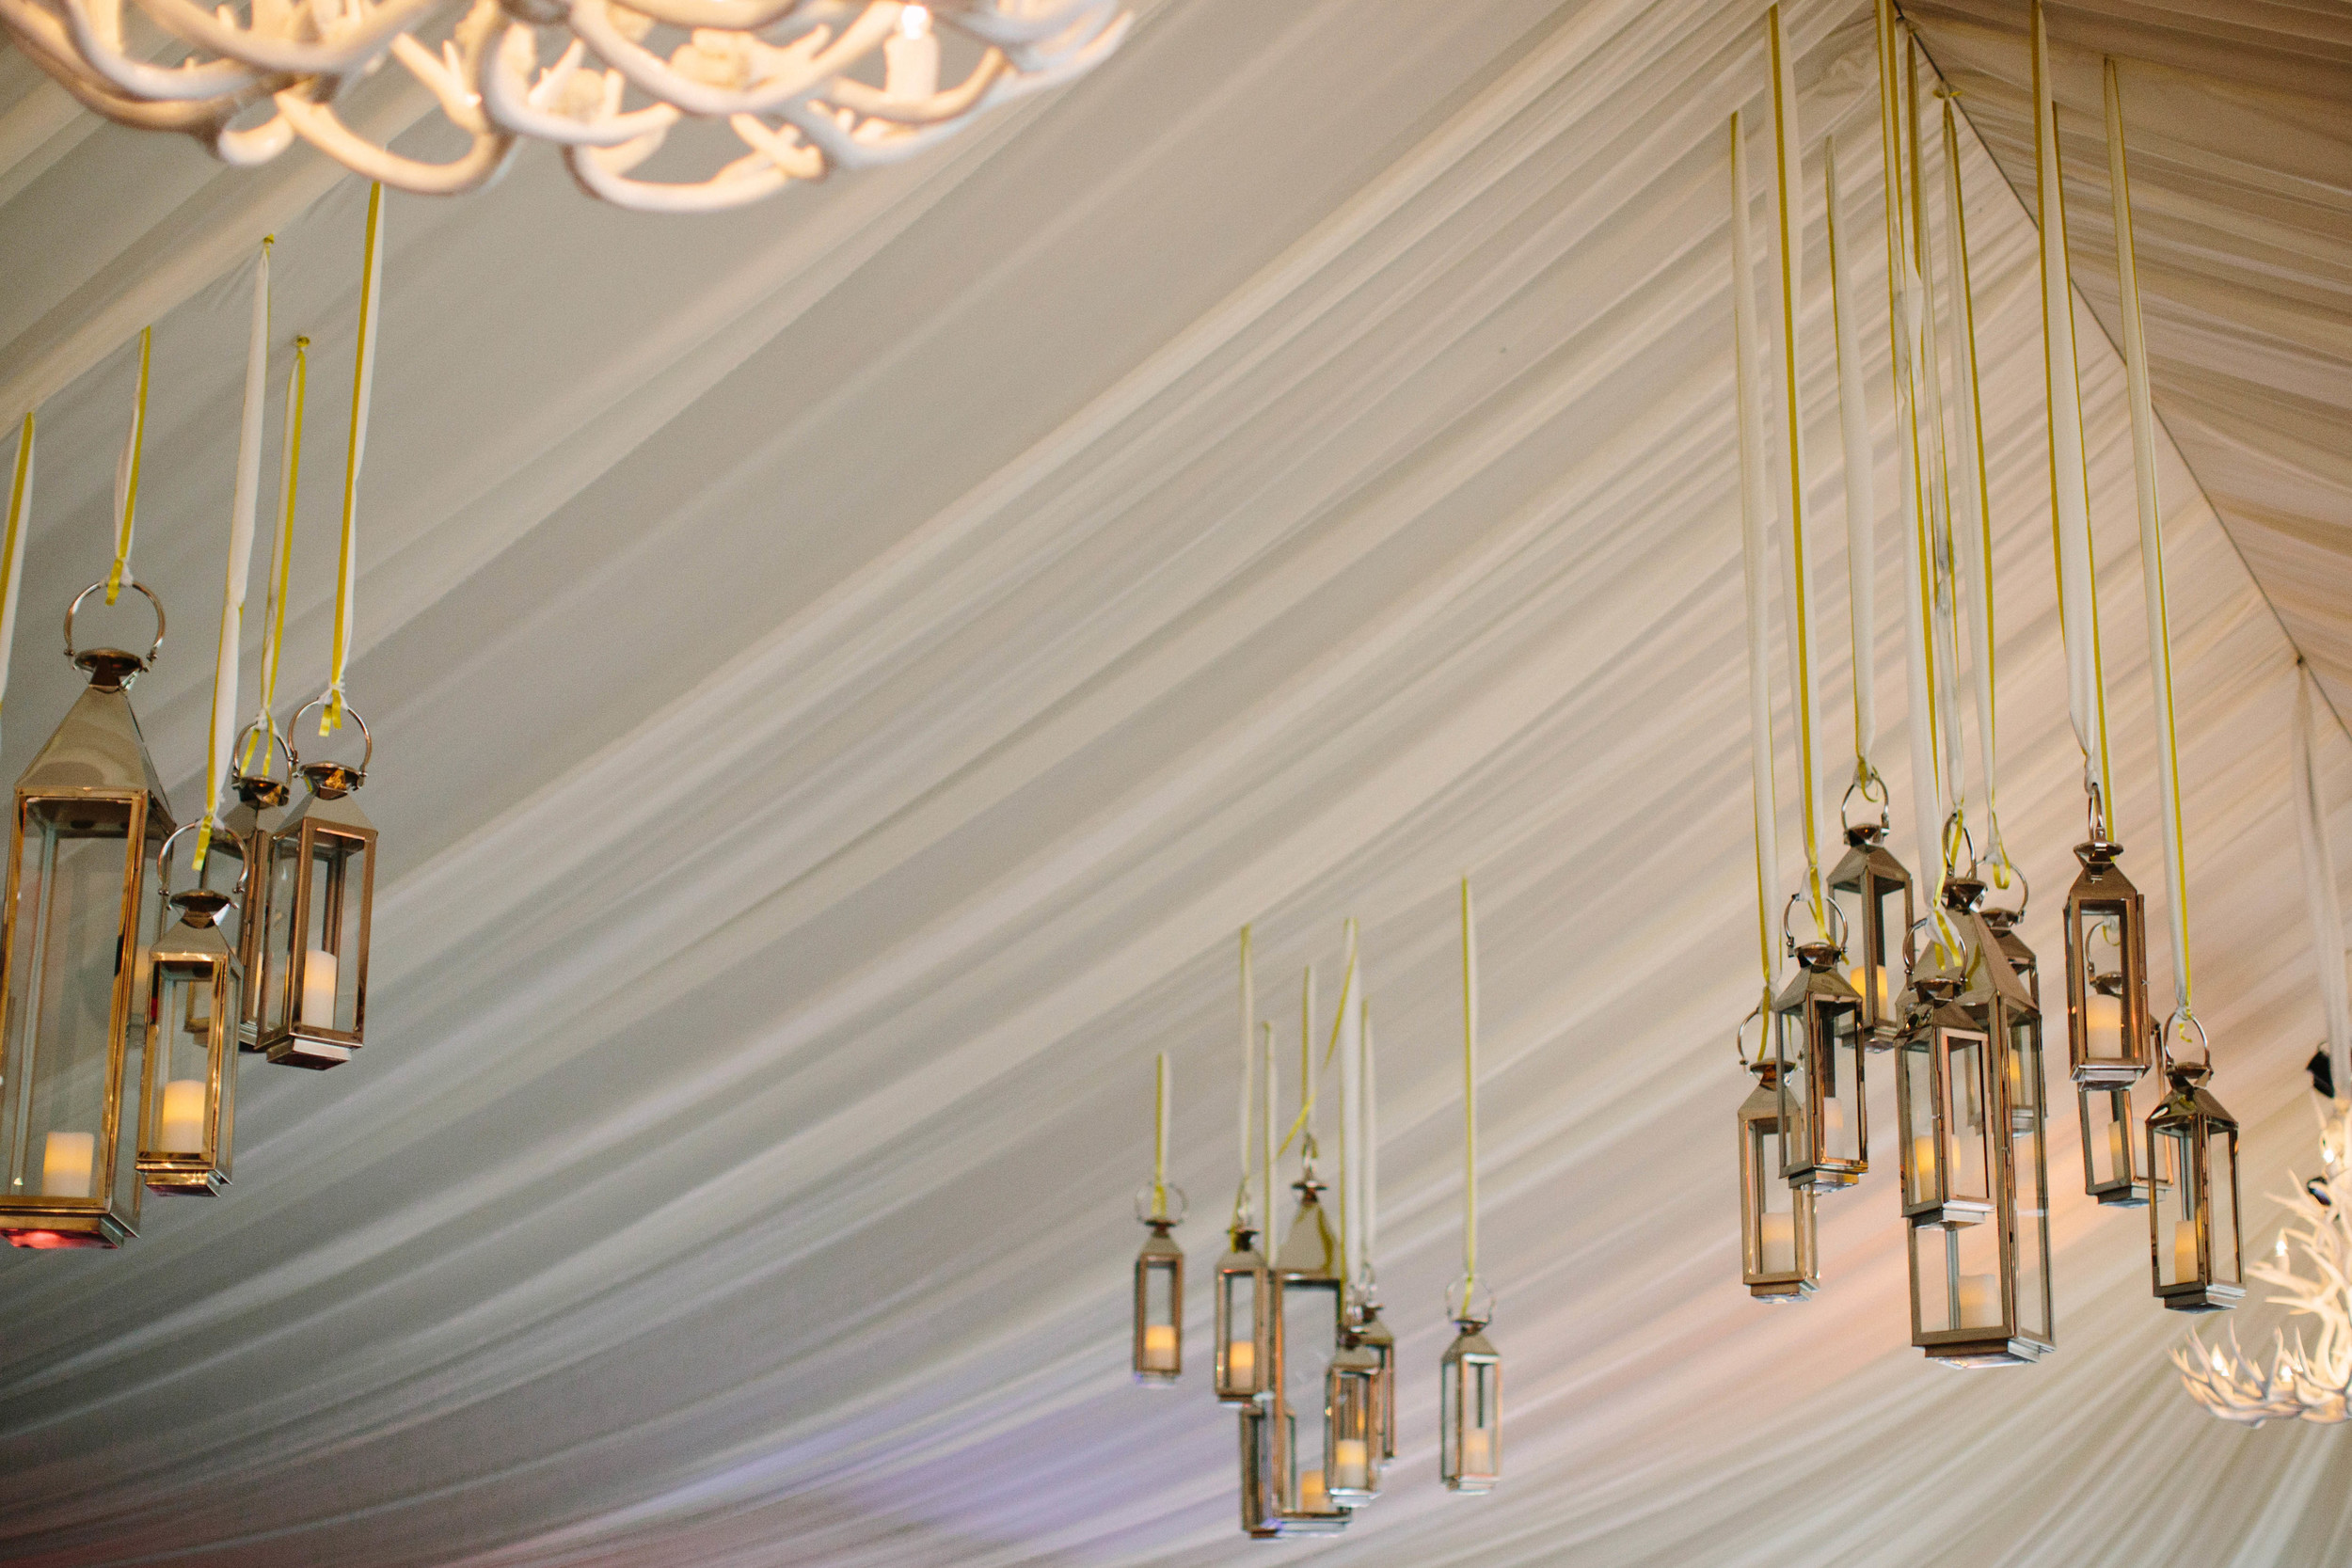 Background hanging lanterns.jpg